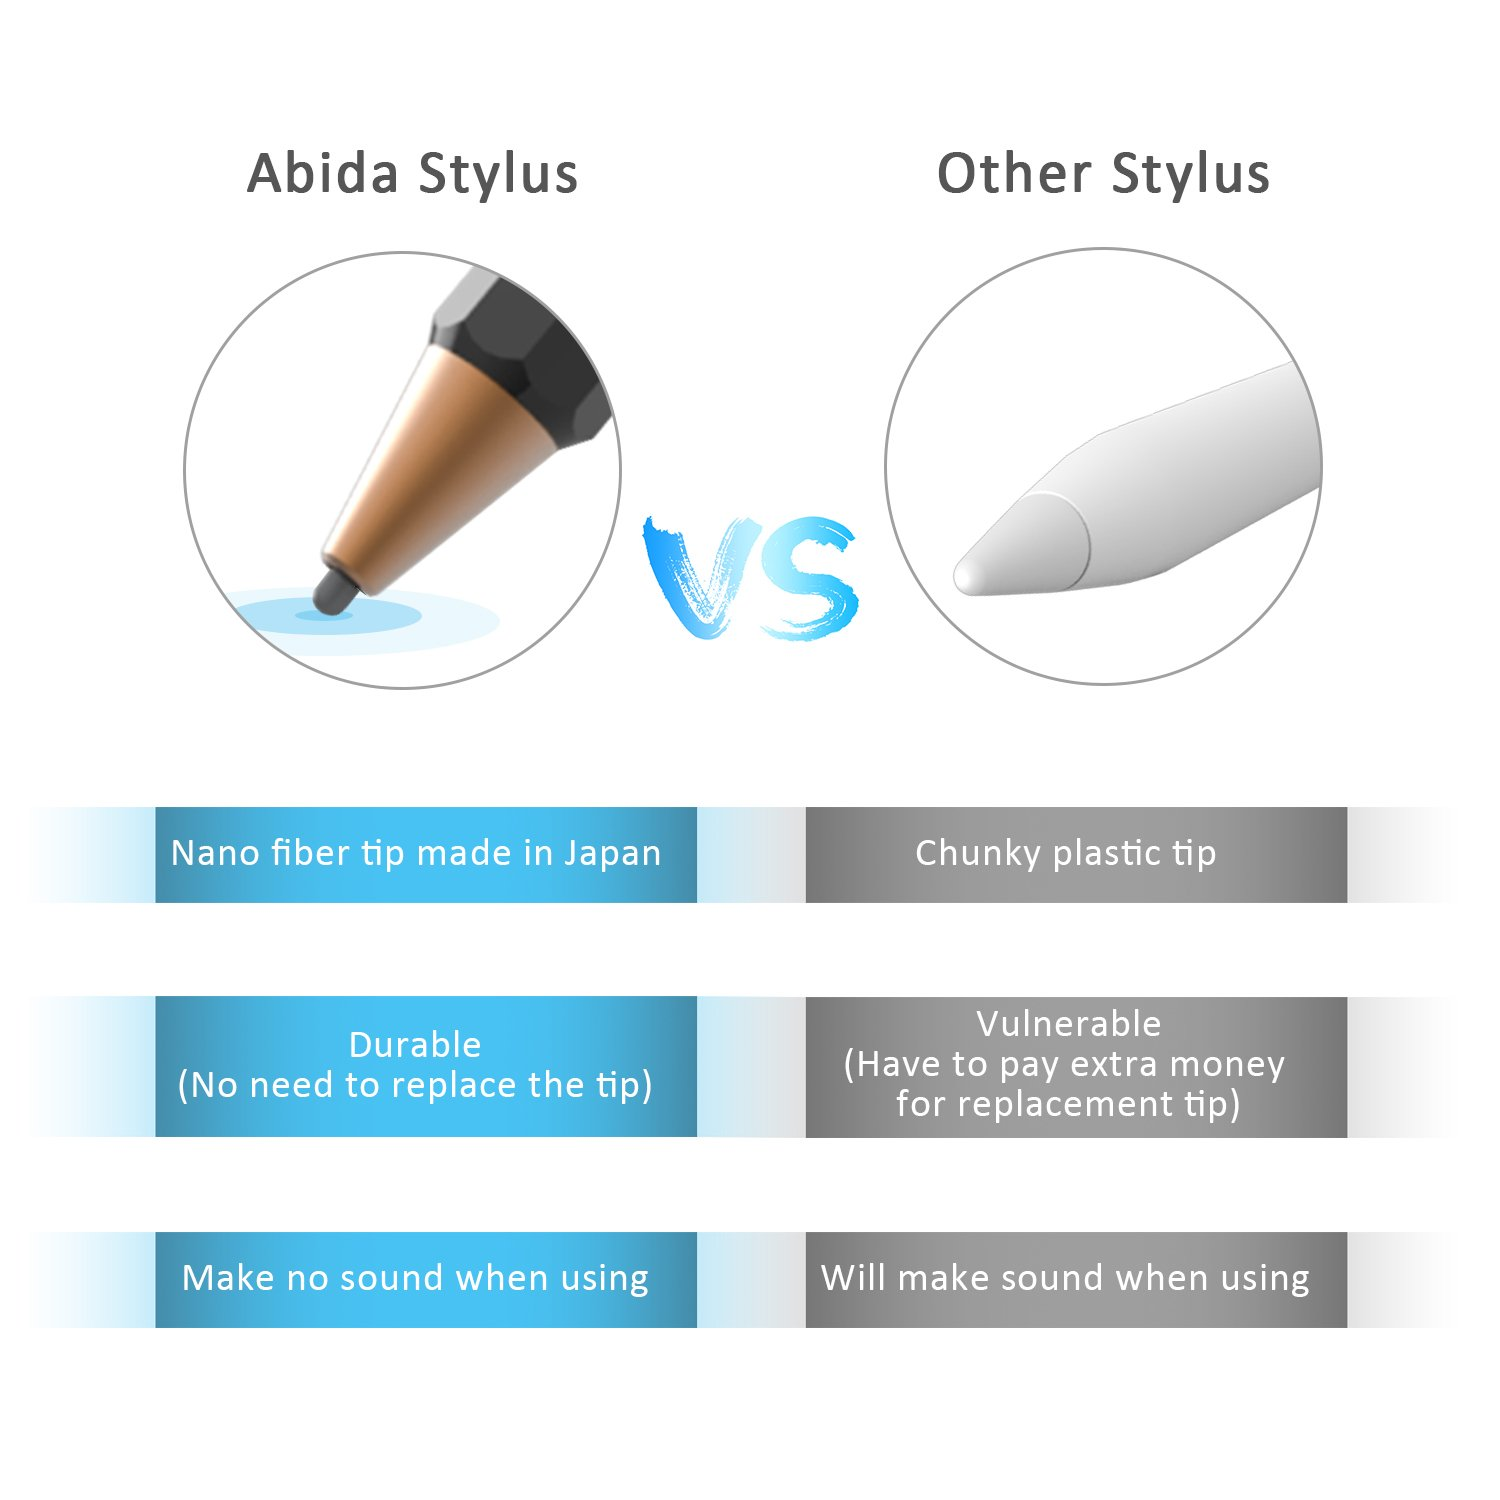 Abida Stylus for iPad, Touchscreen Pen with Fiber Fine Tip, Rechargeable, No Need App or Bluetooth for iOS Devices, Especially for Apple Devices Such as iPad, iPhone, iPad Pro - Brown by Abida (Image #3)